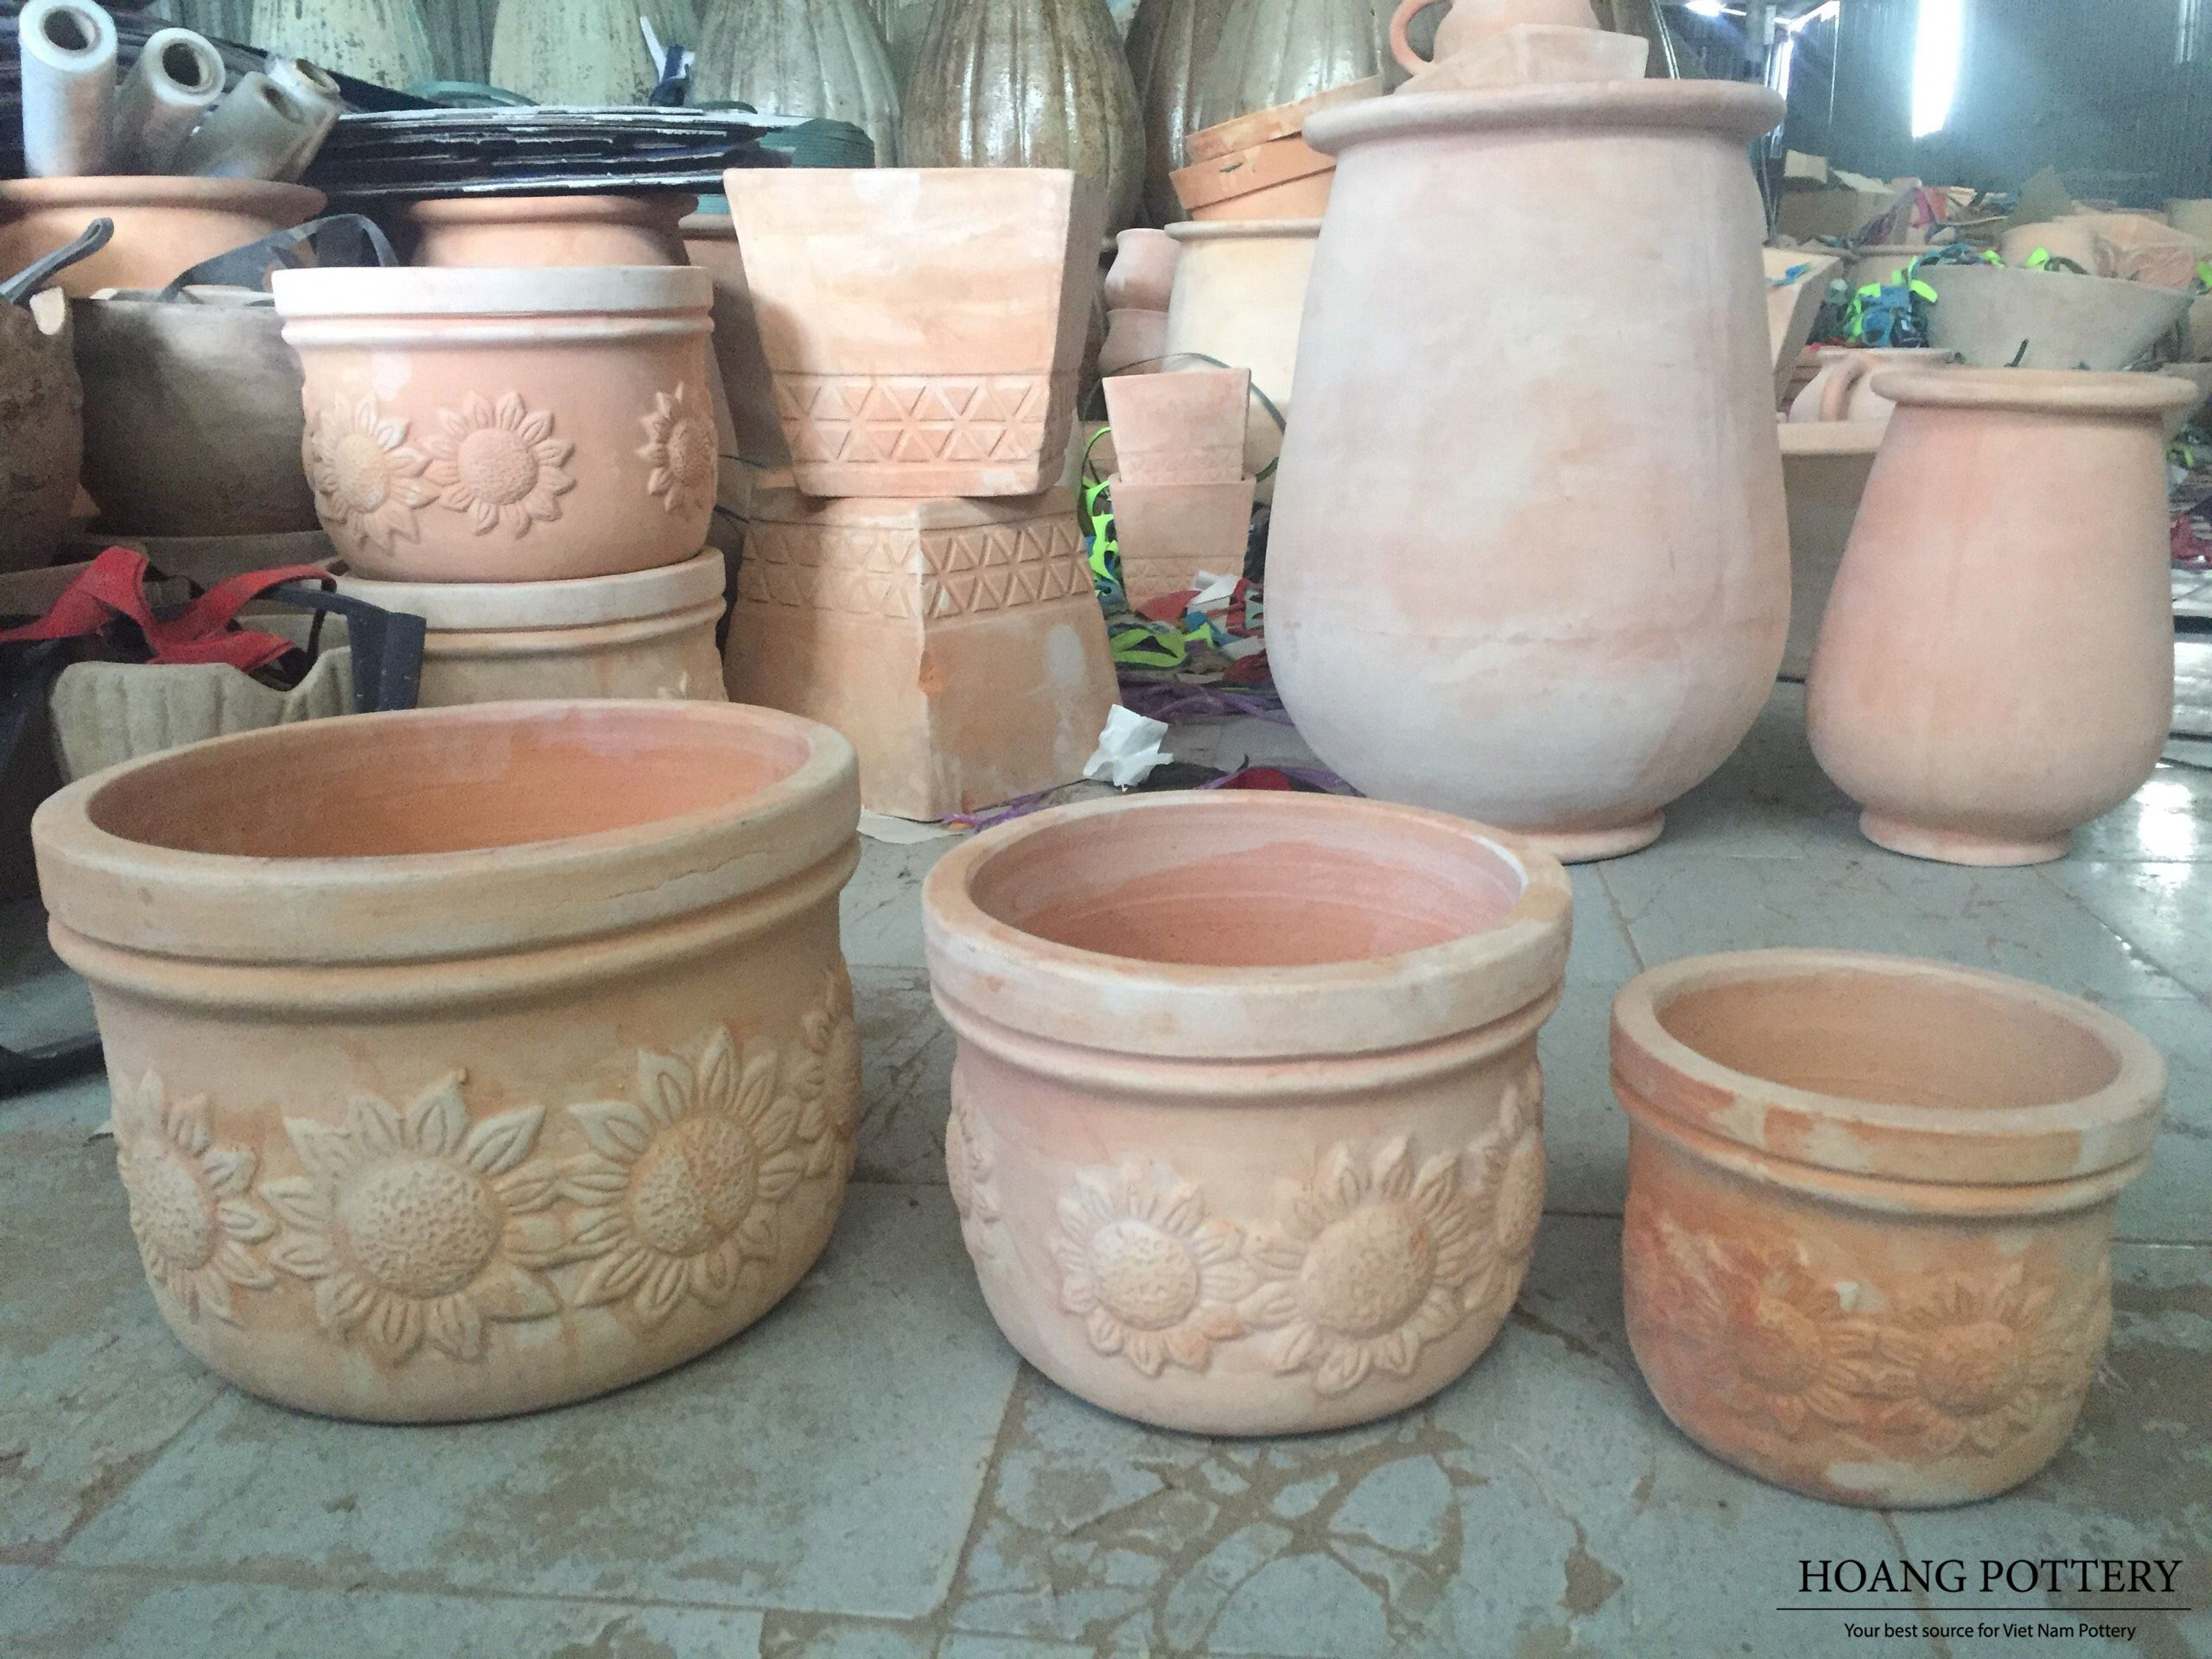 A Set Of 3 Terracotta Planters With Lovely Floral Patterns Set Of 3 Cm 44 40 34 30 24 20 W In 2020 Terracotta Planter Terra Cotta Pots Garden Sunflower Pattern